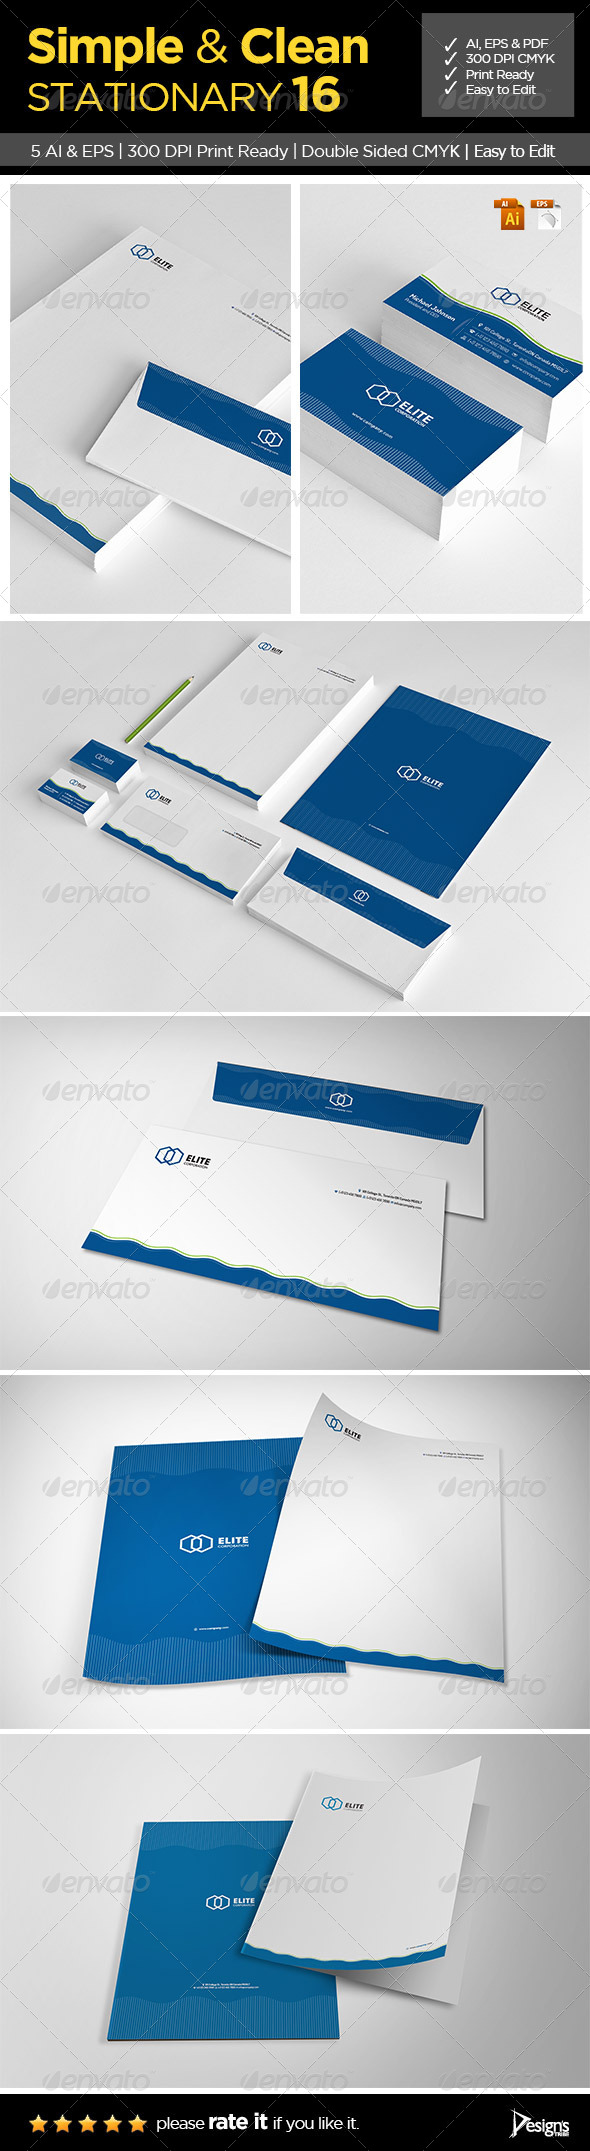 GraphicRiver Simple and Clean Stationary 16 6426728